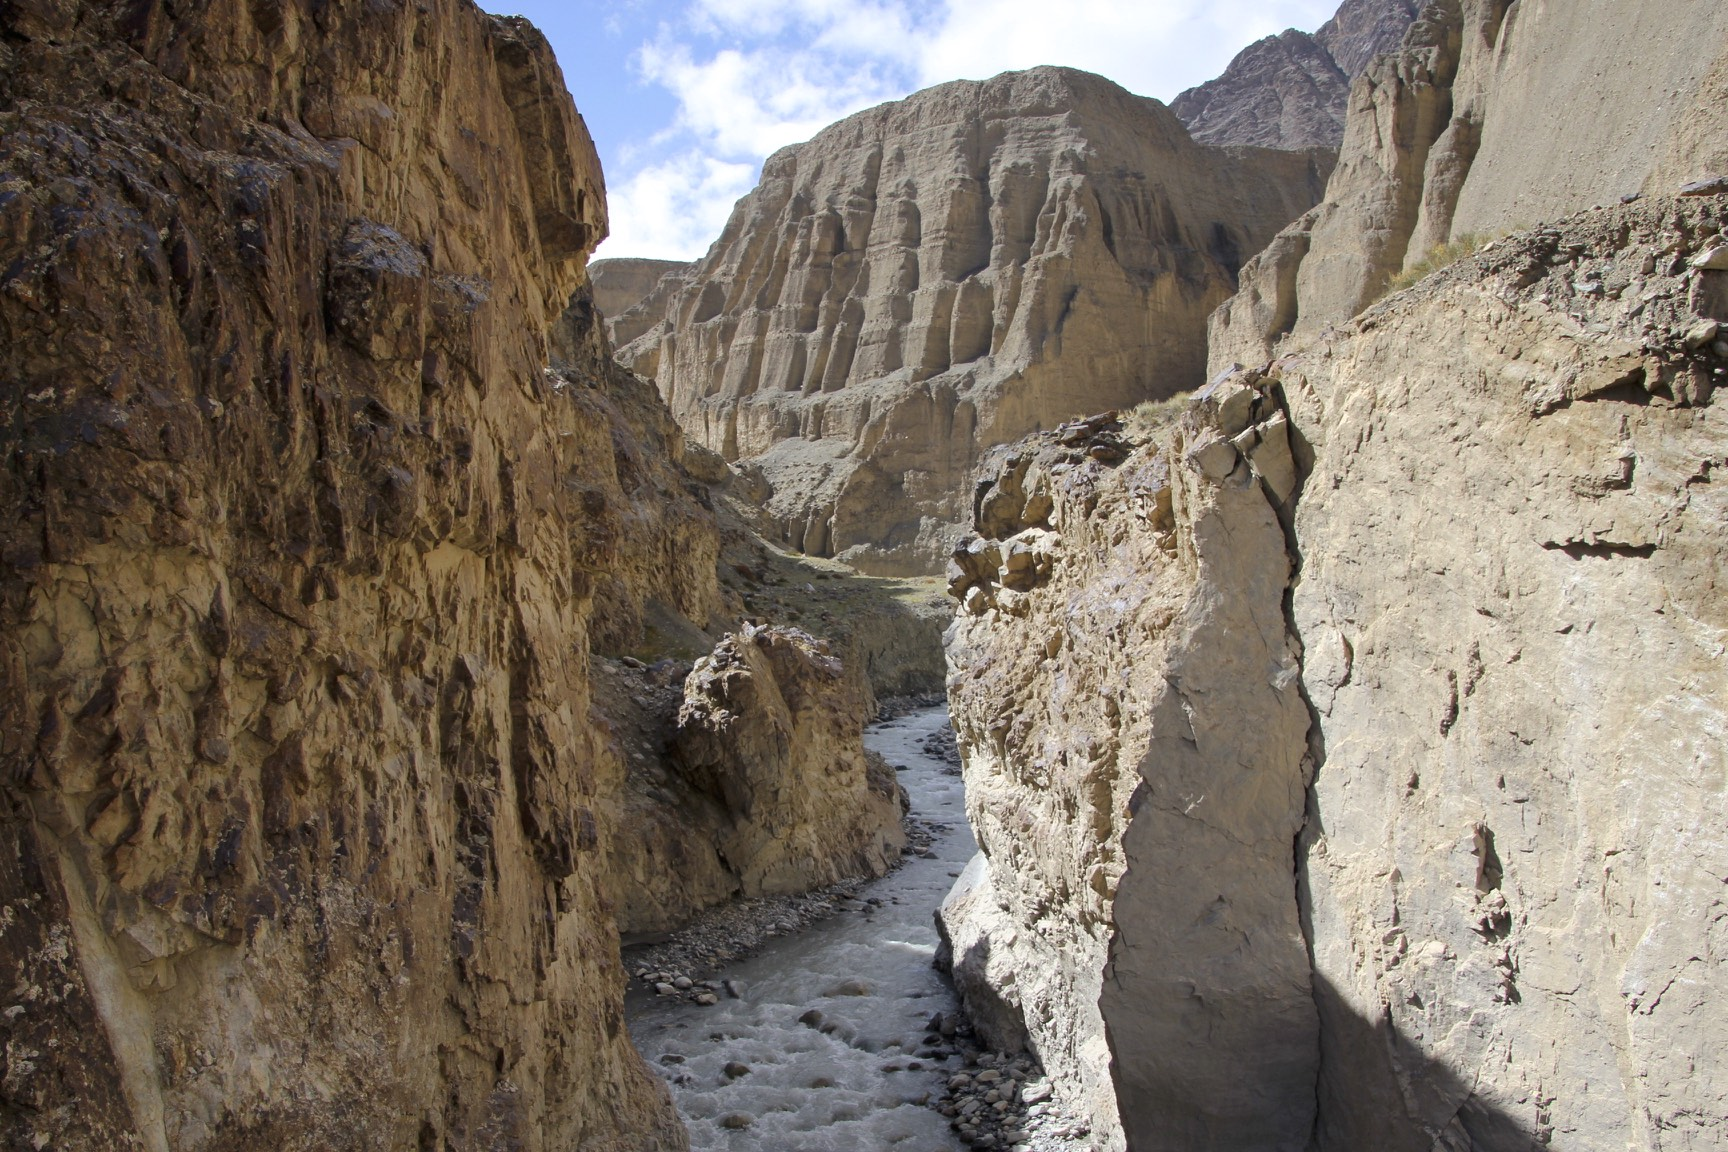 The gorges of the north Karakoram - near Aghil Pass